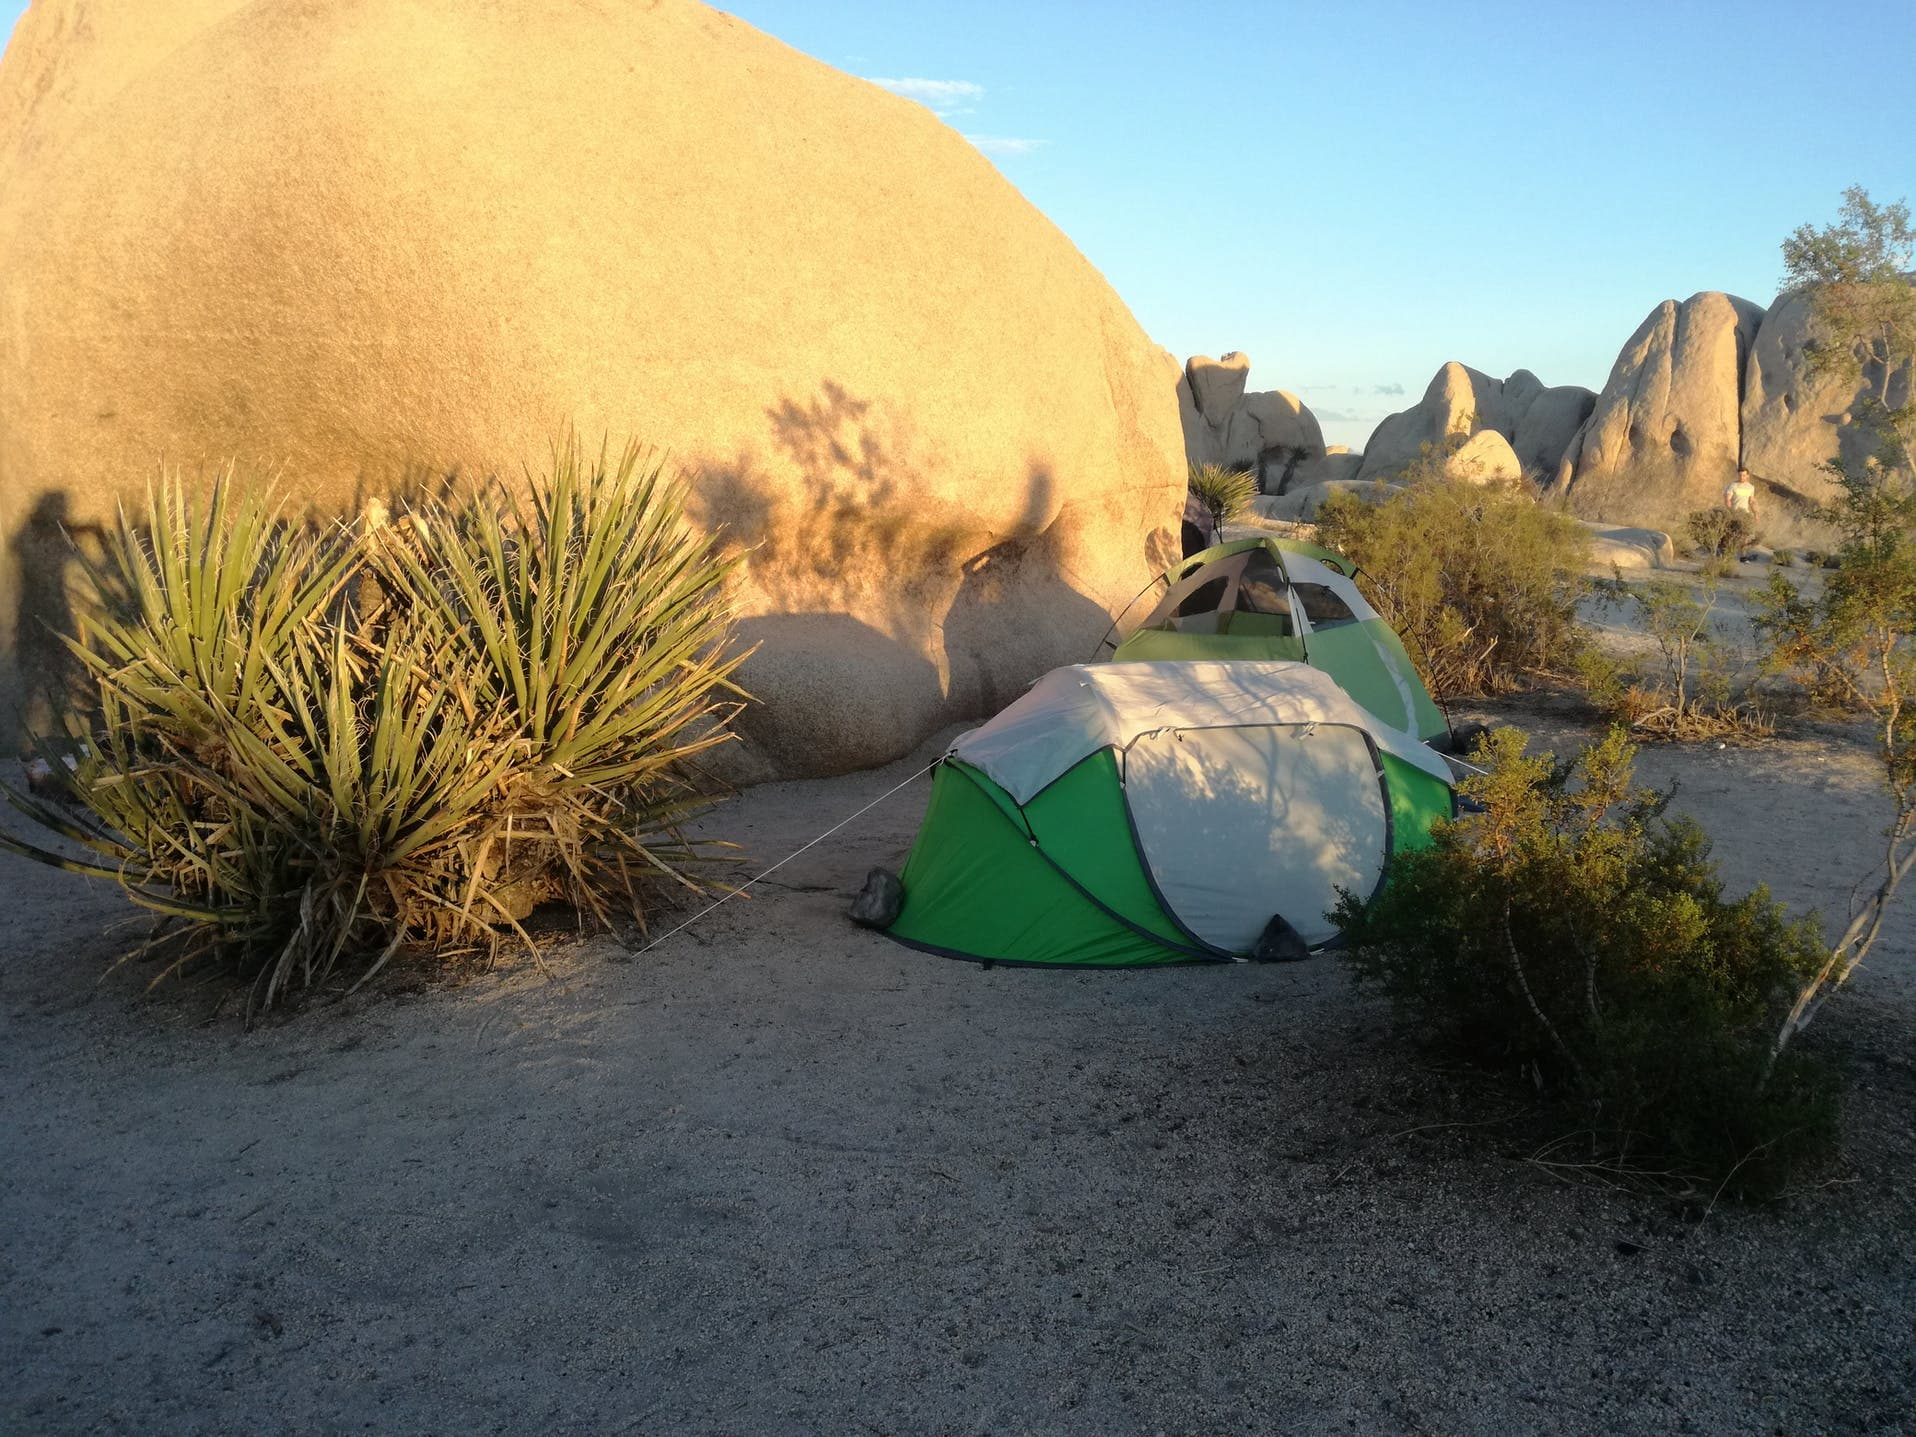 Green tent next to boulder in Joshua Tree National Park near Palm Springs.